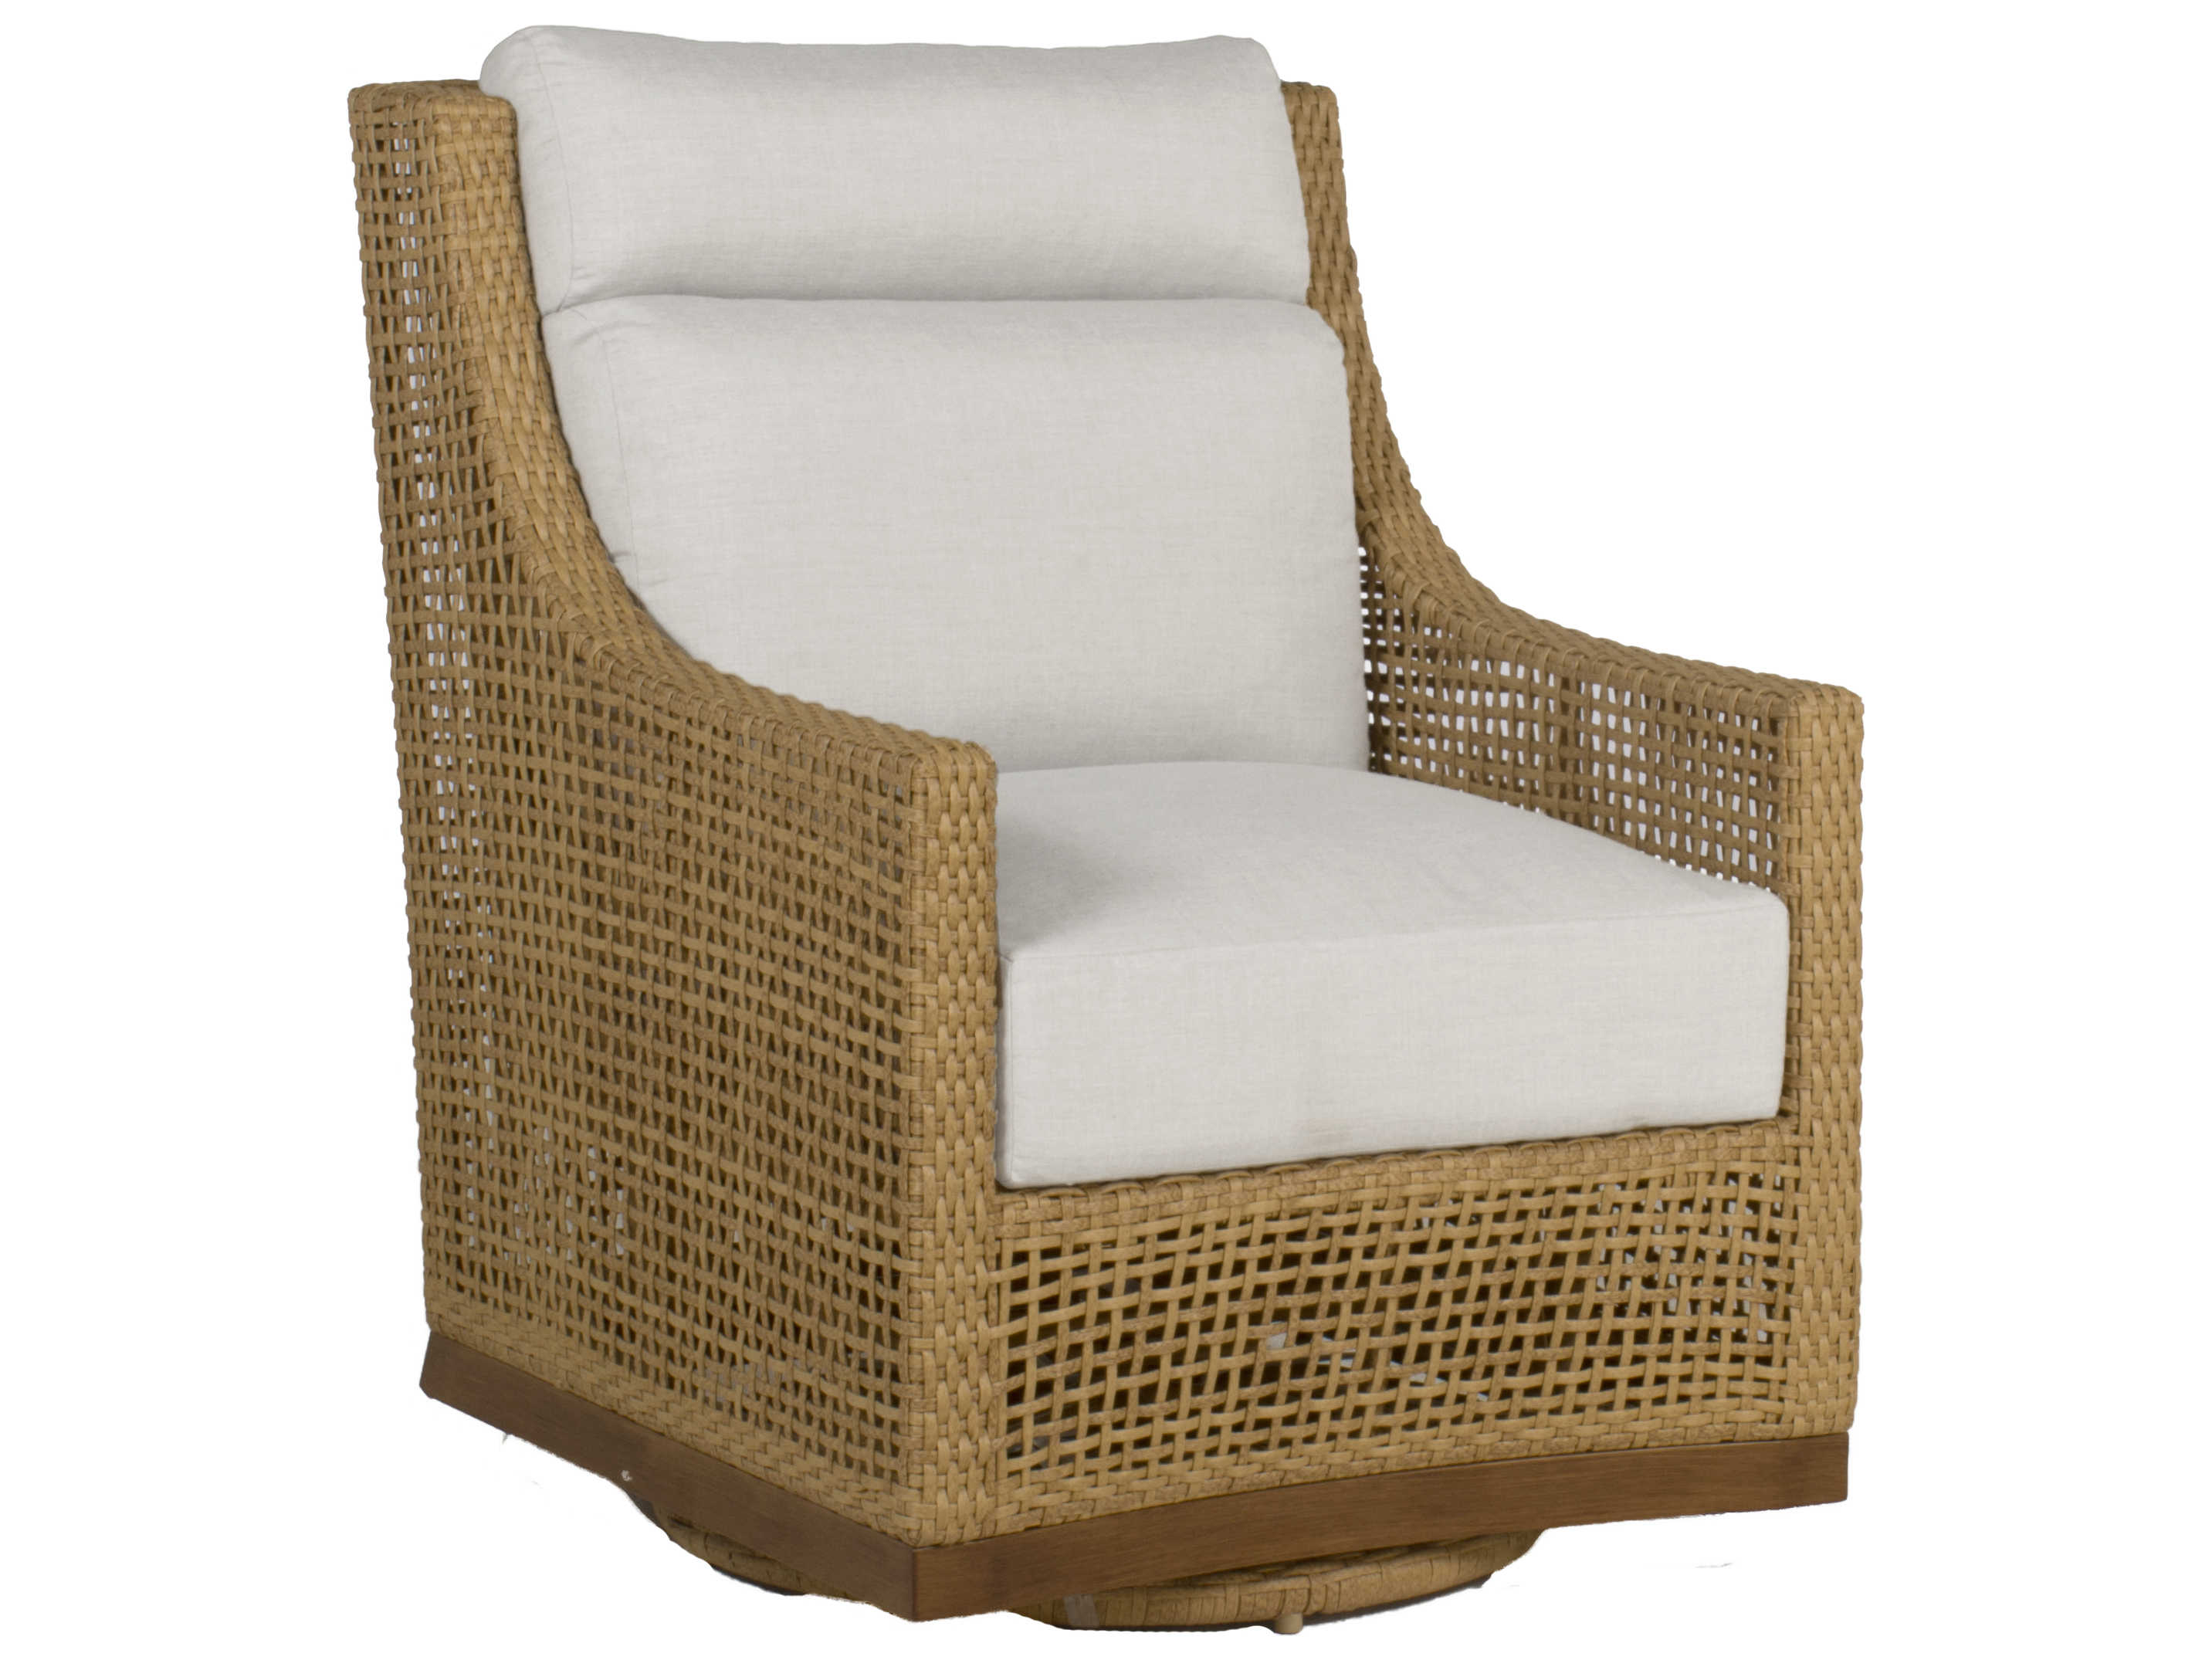 Miraculous Summer Classics Peninsula Wicker Raffia Sandalwood Swivel Lounge Chair With Cushion Gmtry Best Dining Table And Chair Ideas Images Gmtryco